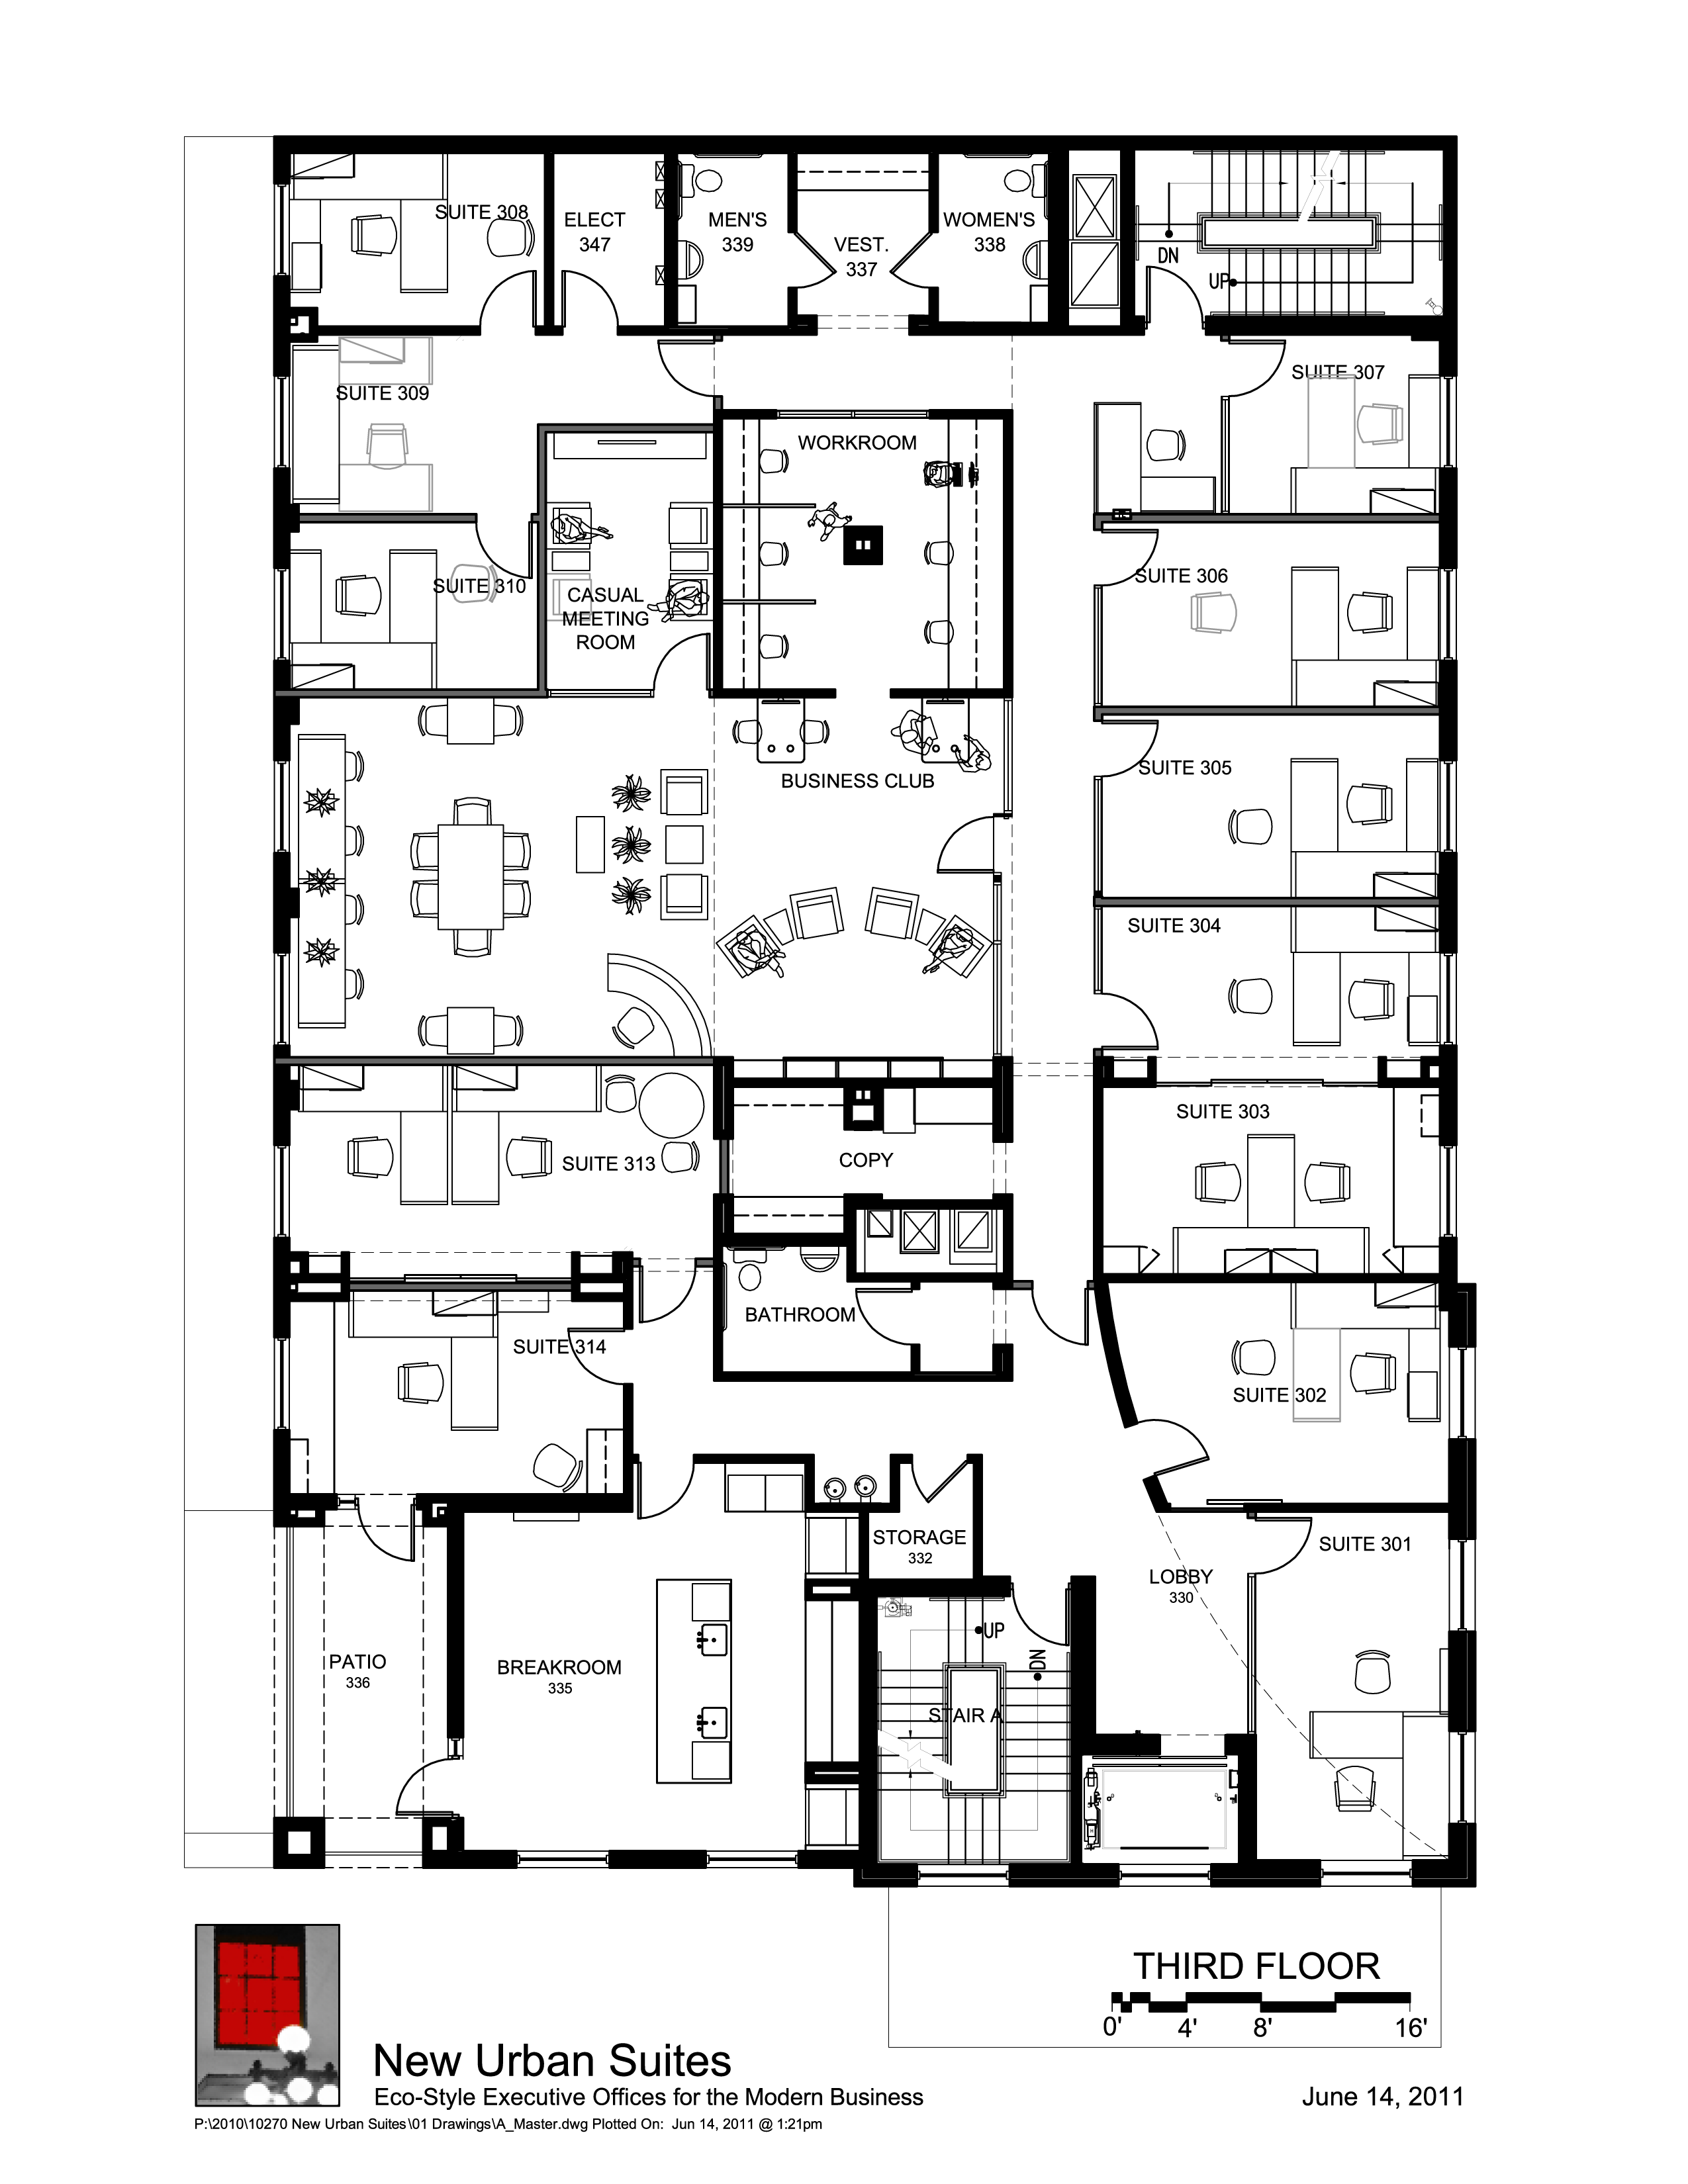 Drawn office admin office The floor floor different totally